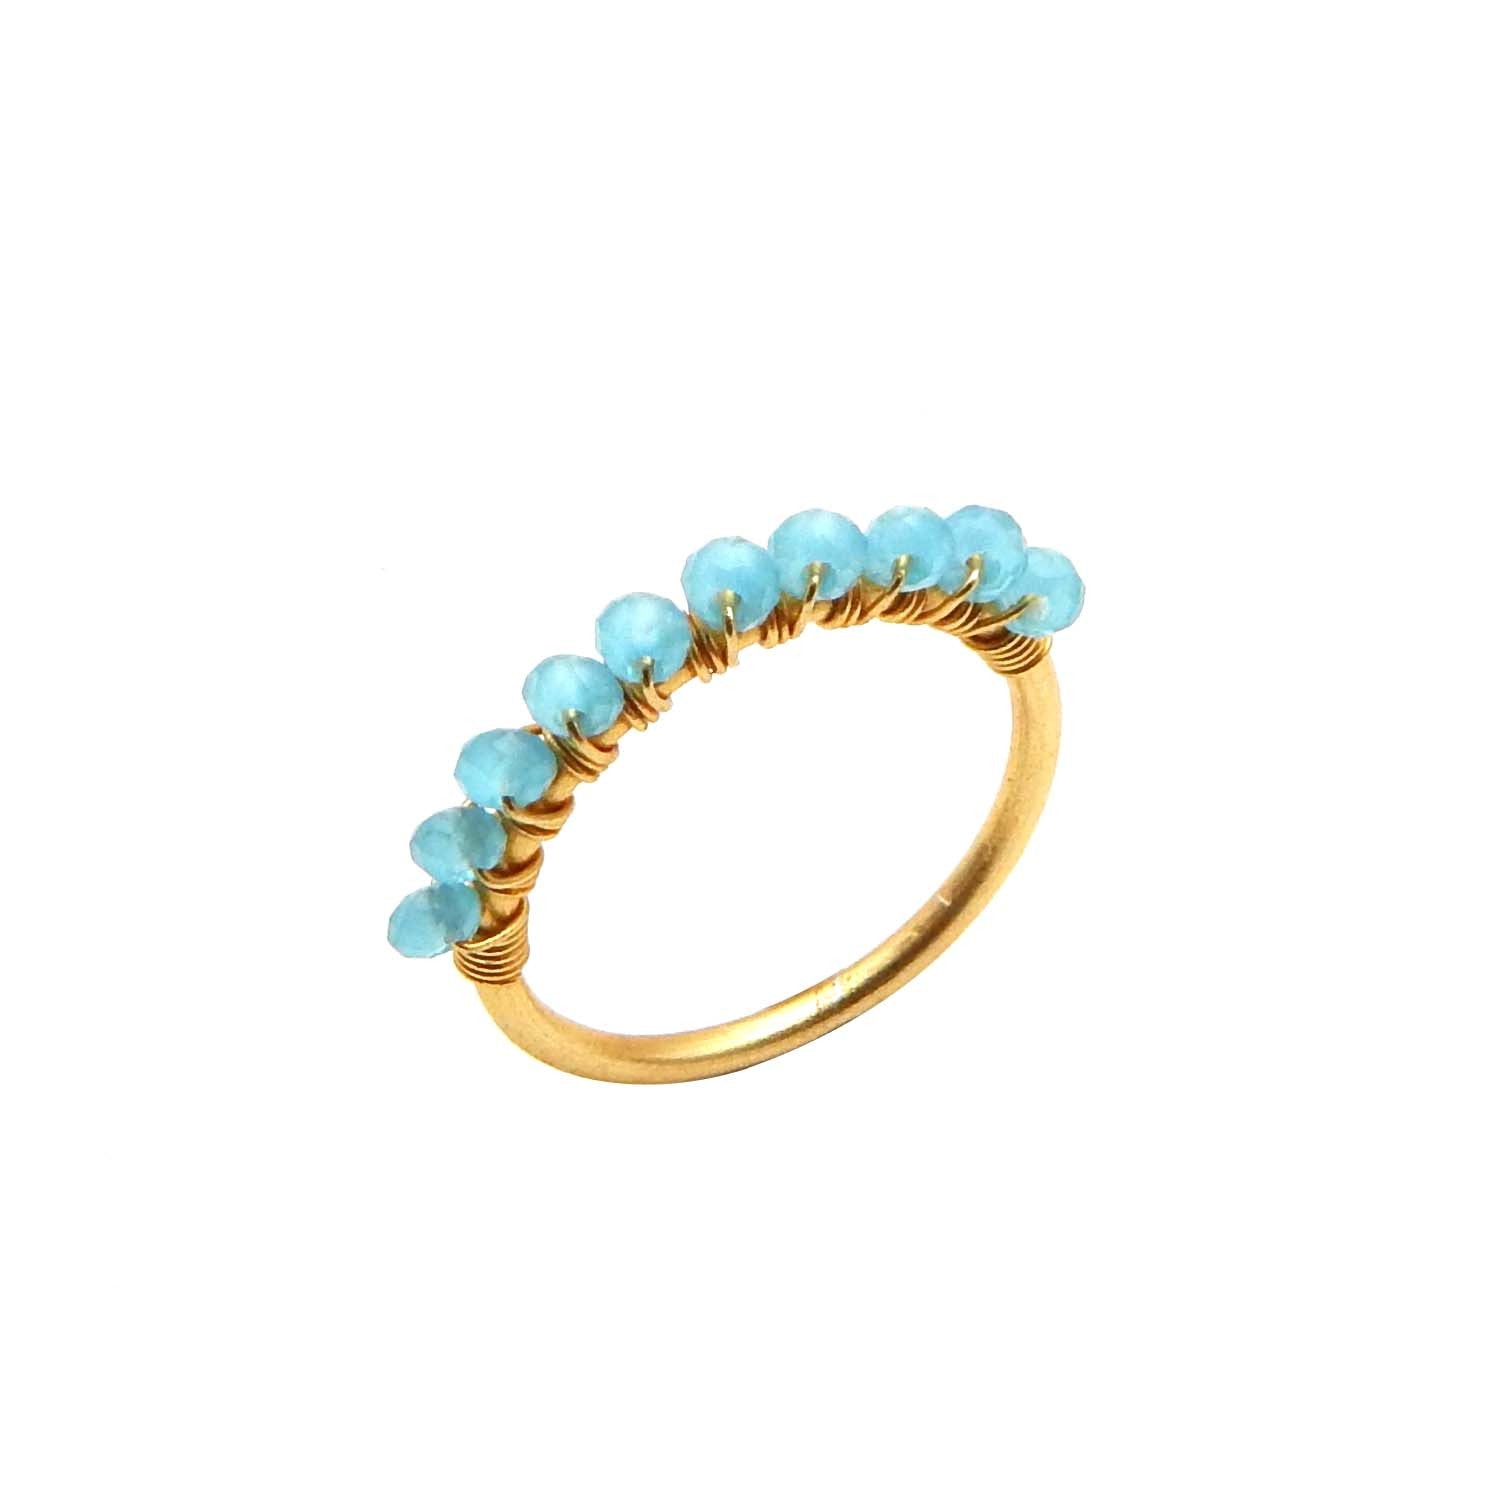 Aqua Chalcedony Row Ring - An Indian Summer